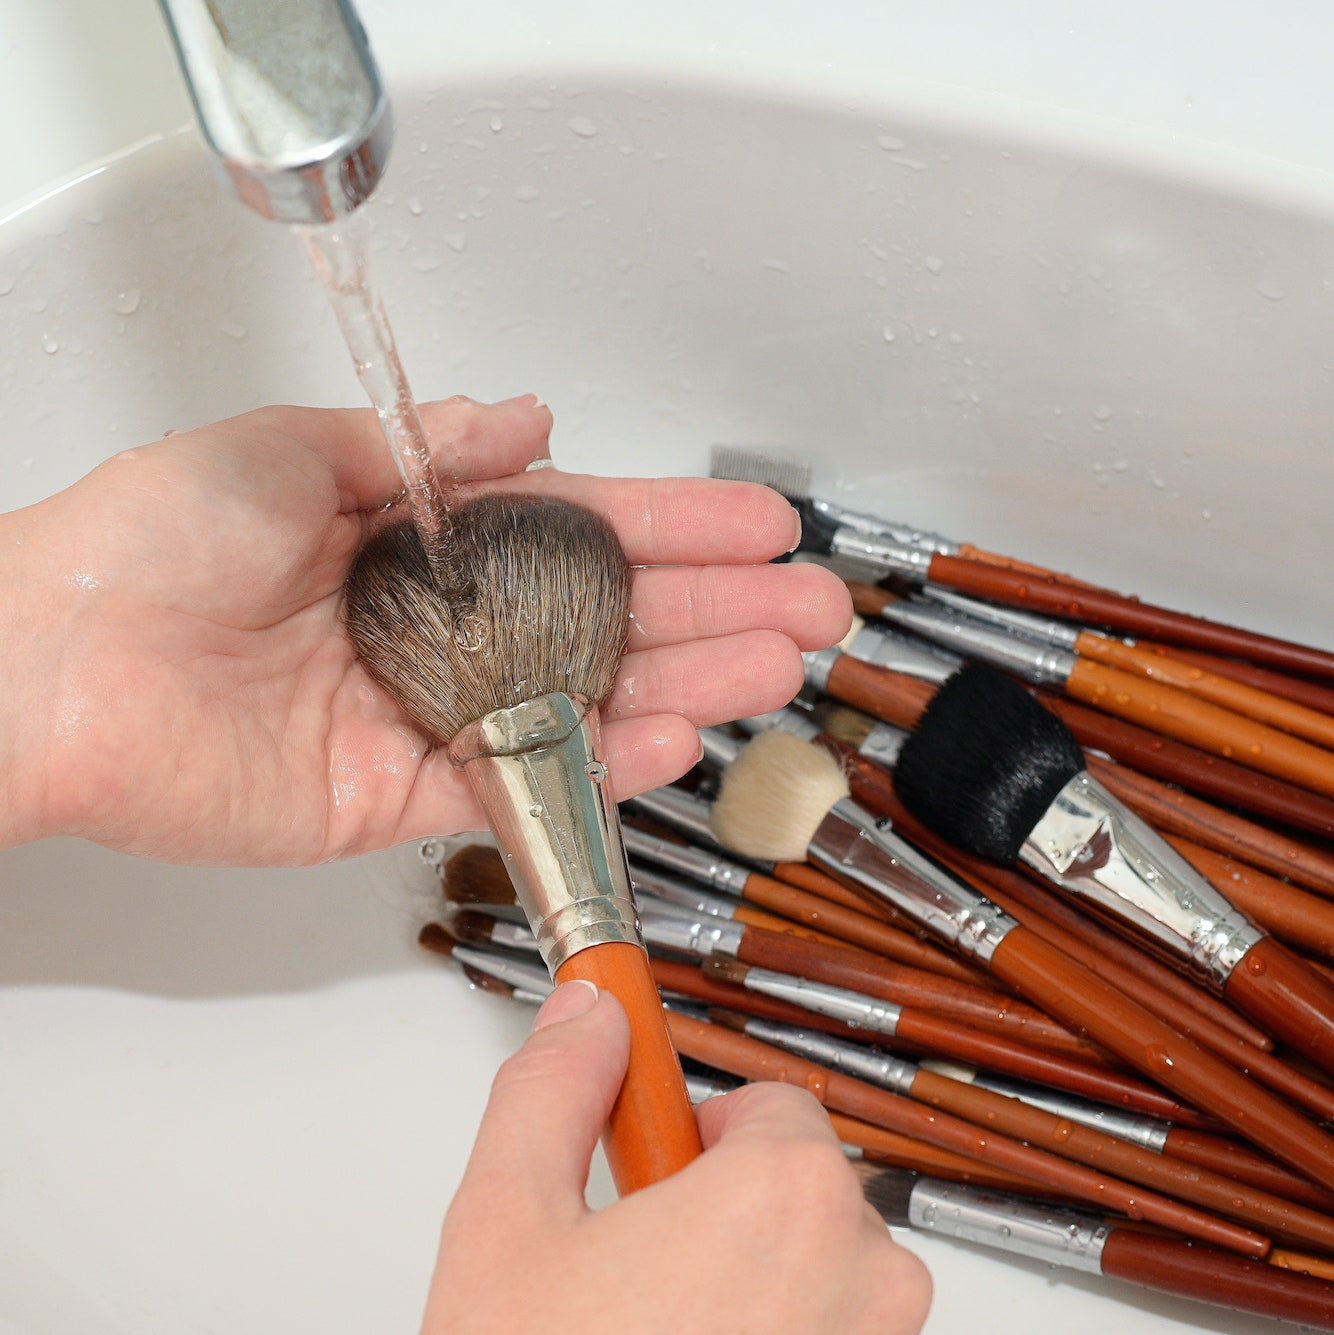 Clean Your Tools Regularly